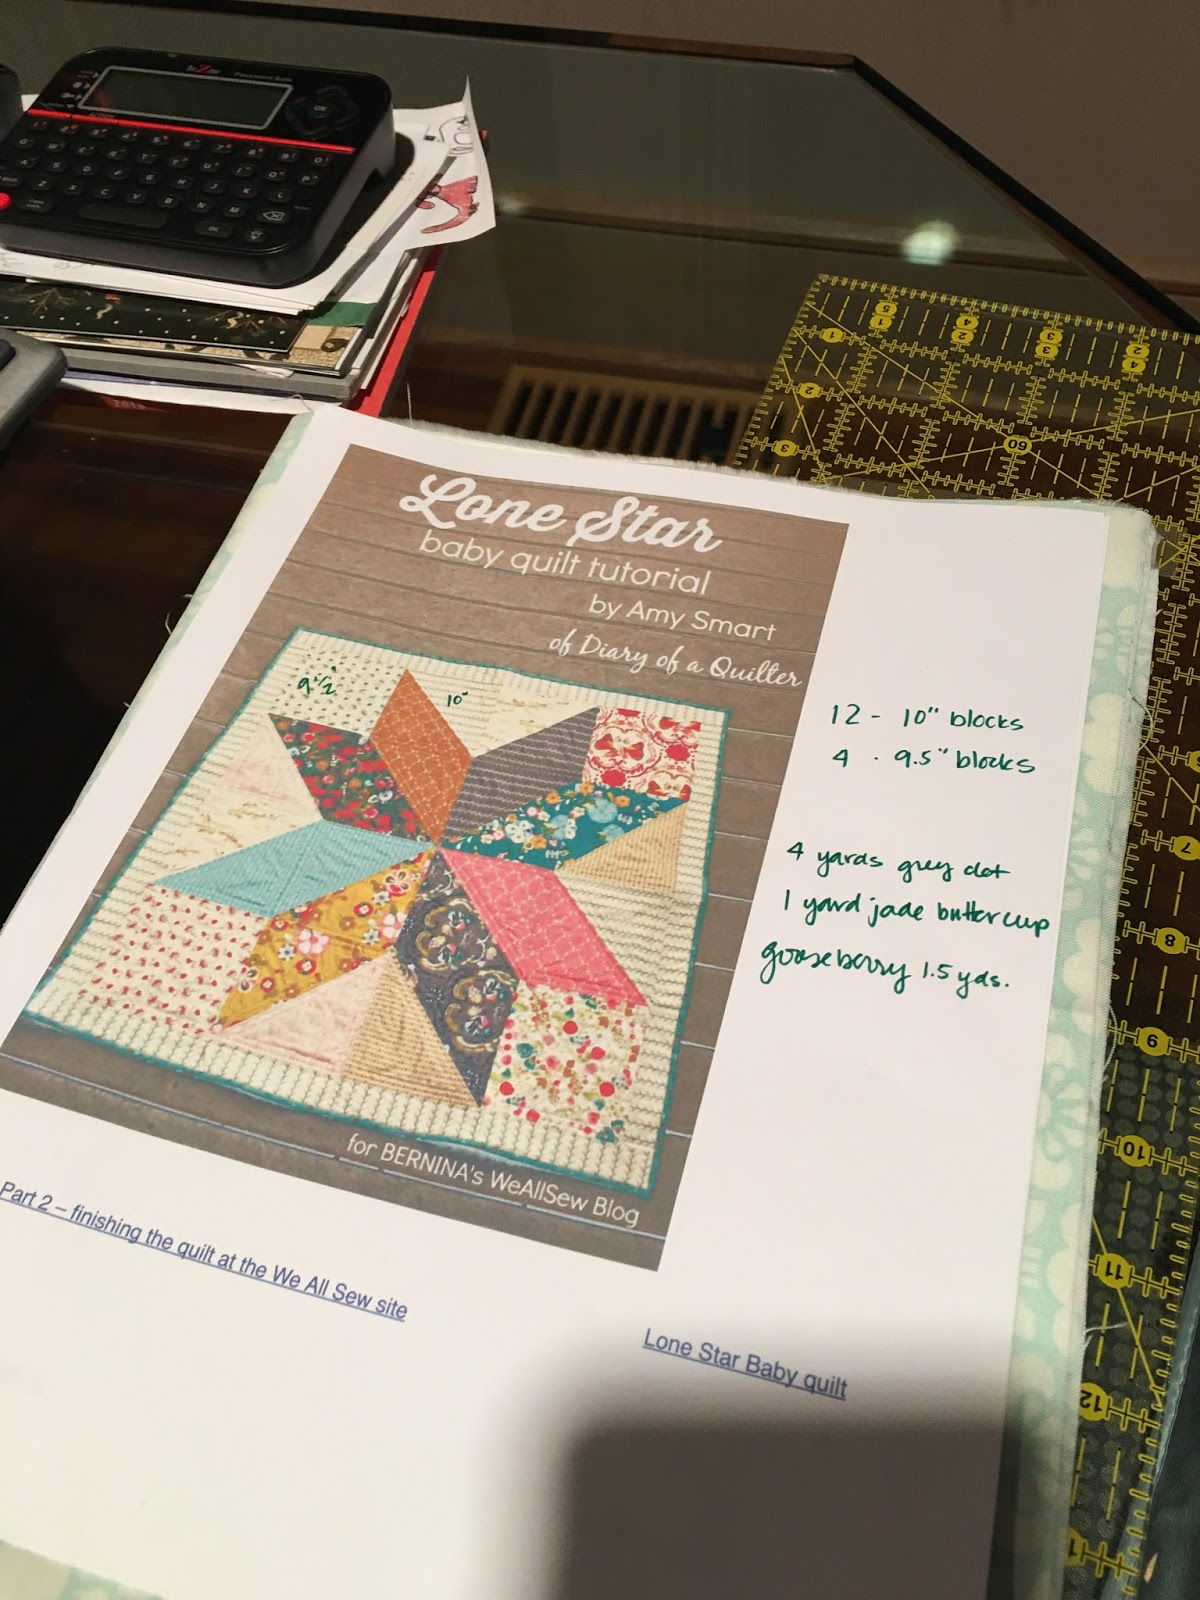 Behance head on over amys blog diary of a quilter and check out her great tutorials and pattern shop baditri Choice Image